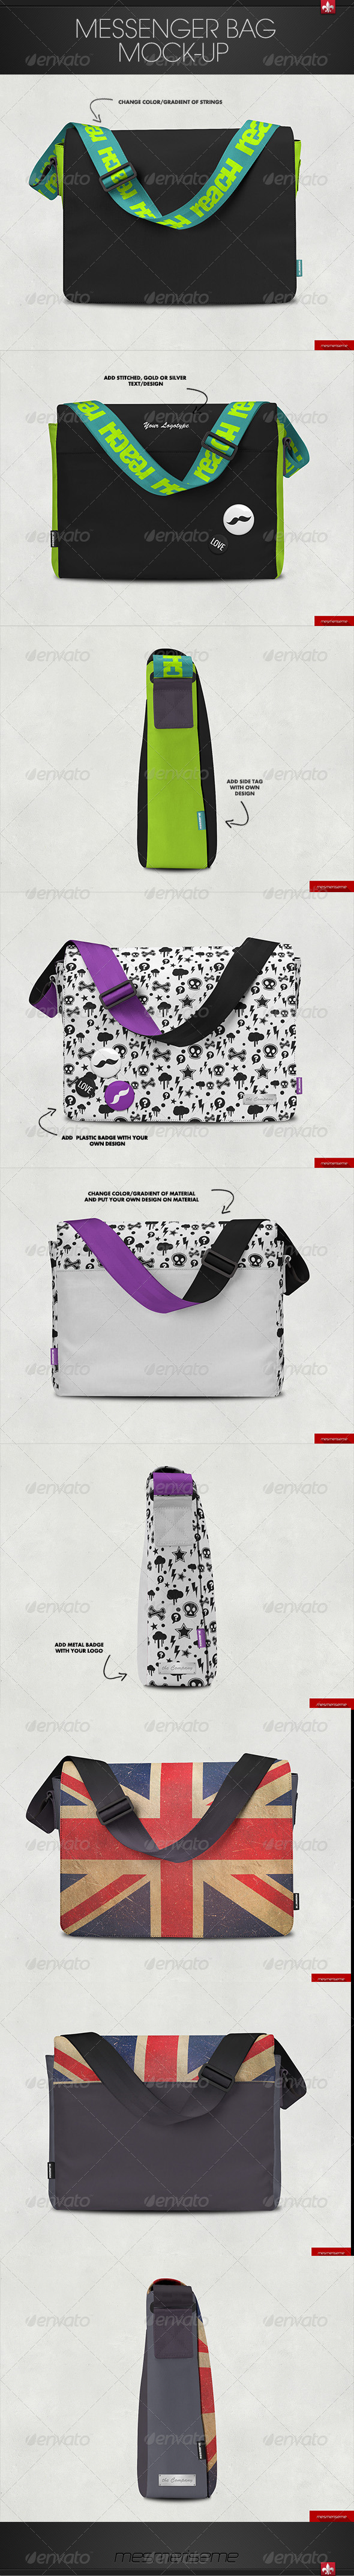 GraphicRiver Messenger Bag Mock-up 7384034